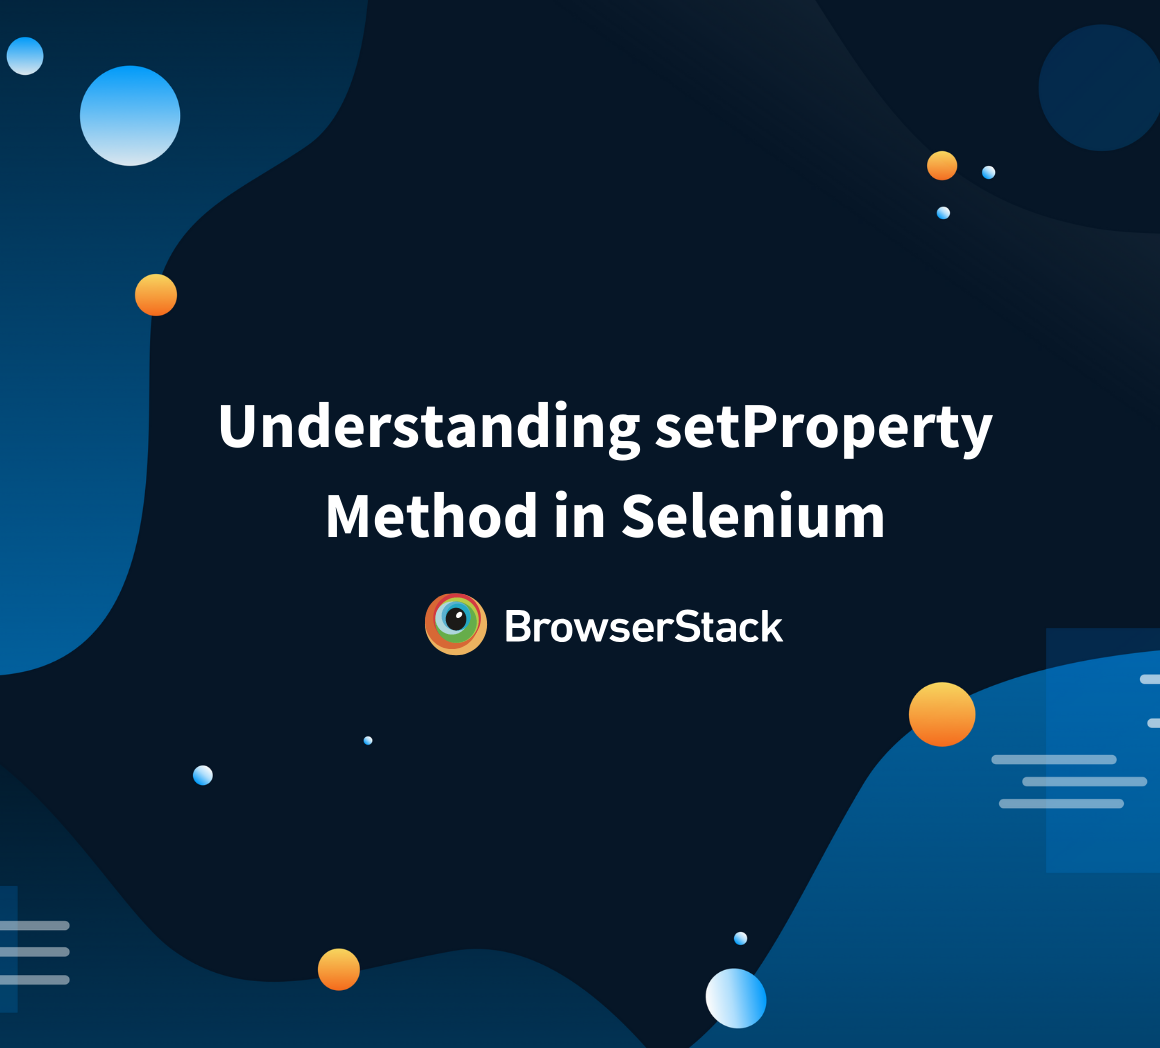 setProperty in Selenium